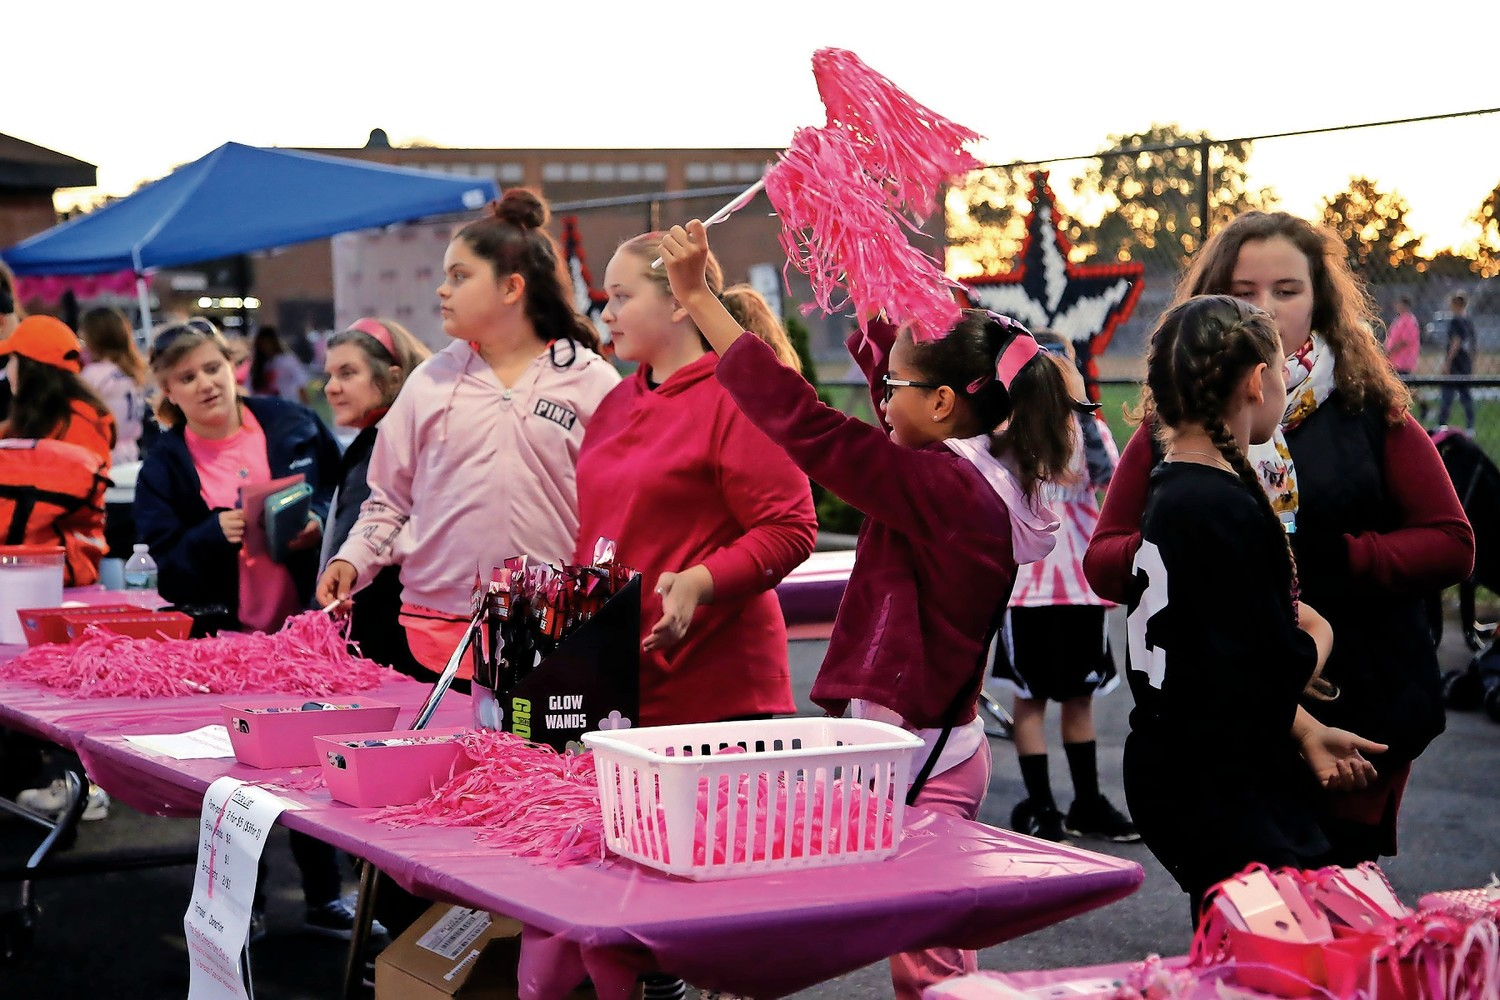 Fifth-grader Emmy Zueto uses pink cheerleading props to attract attention to their booth.